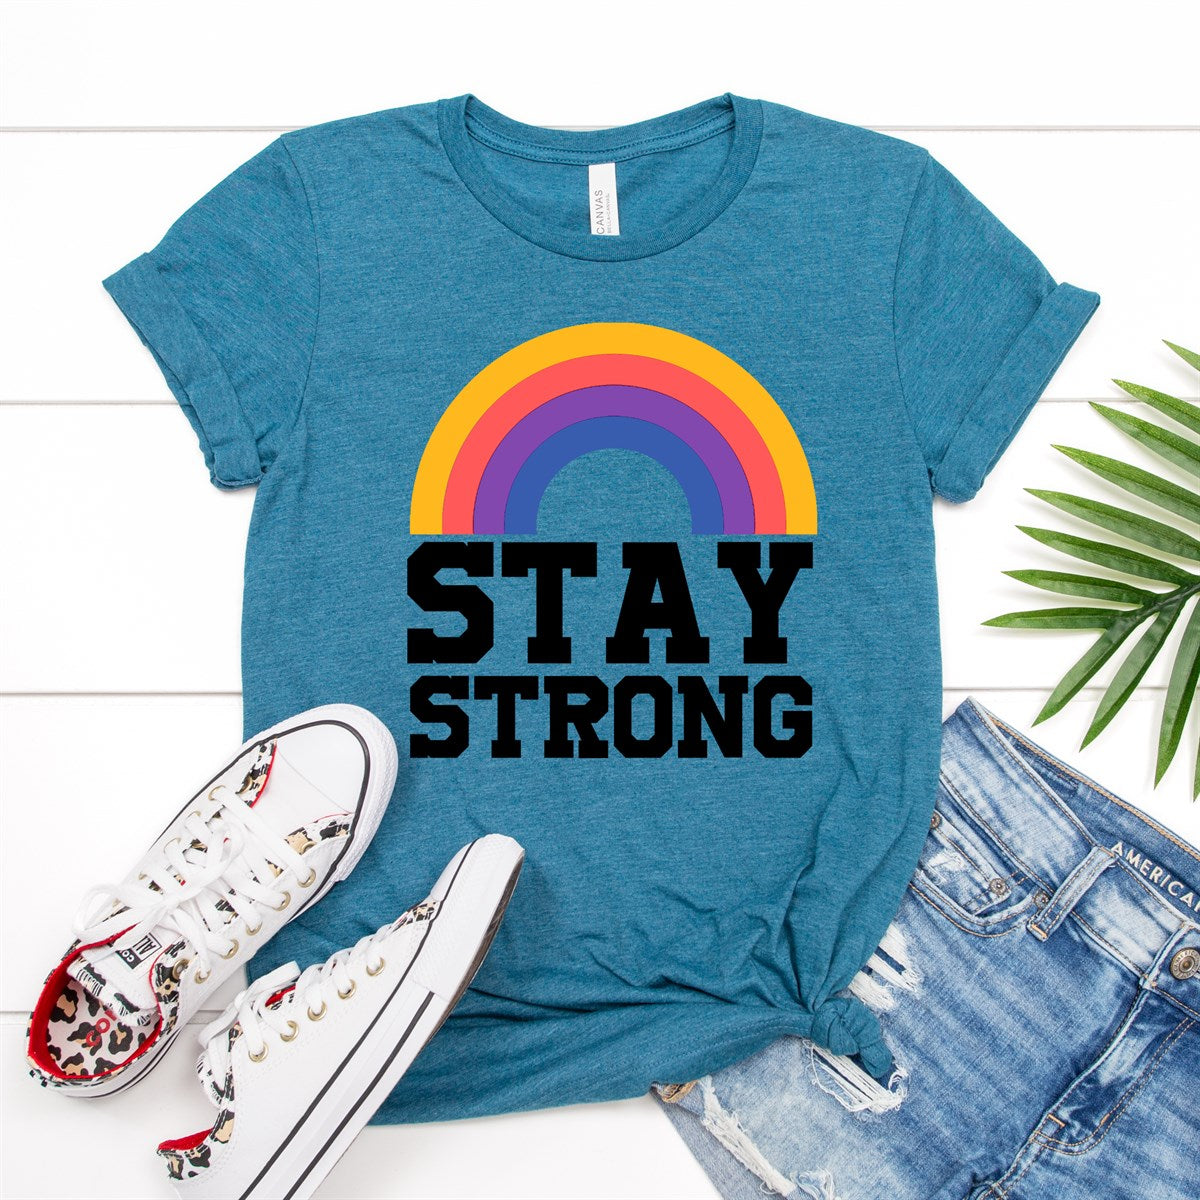 Stay Strong Tee - Limeberry Designs